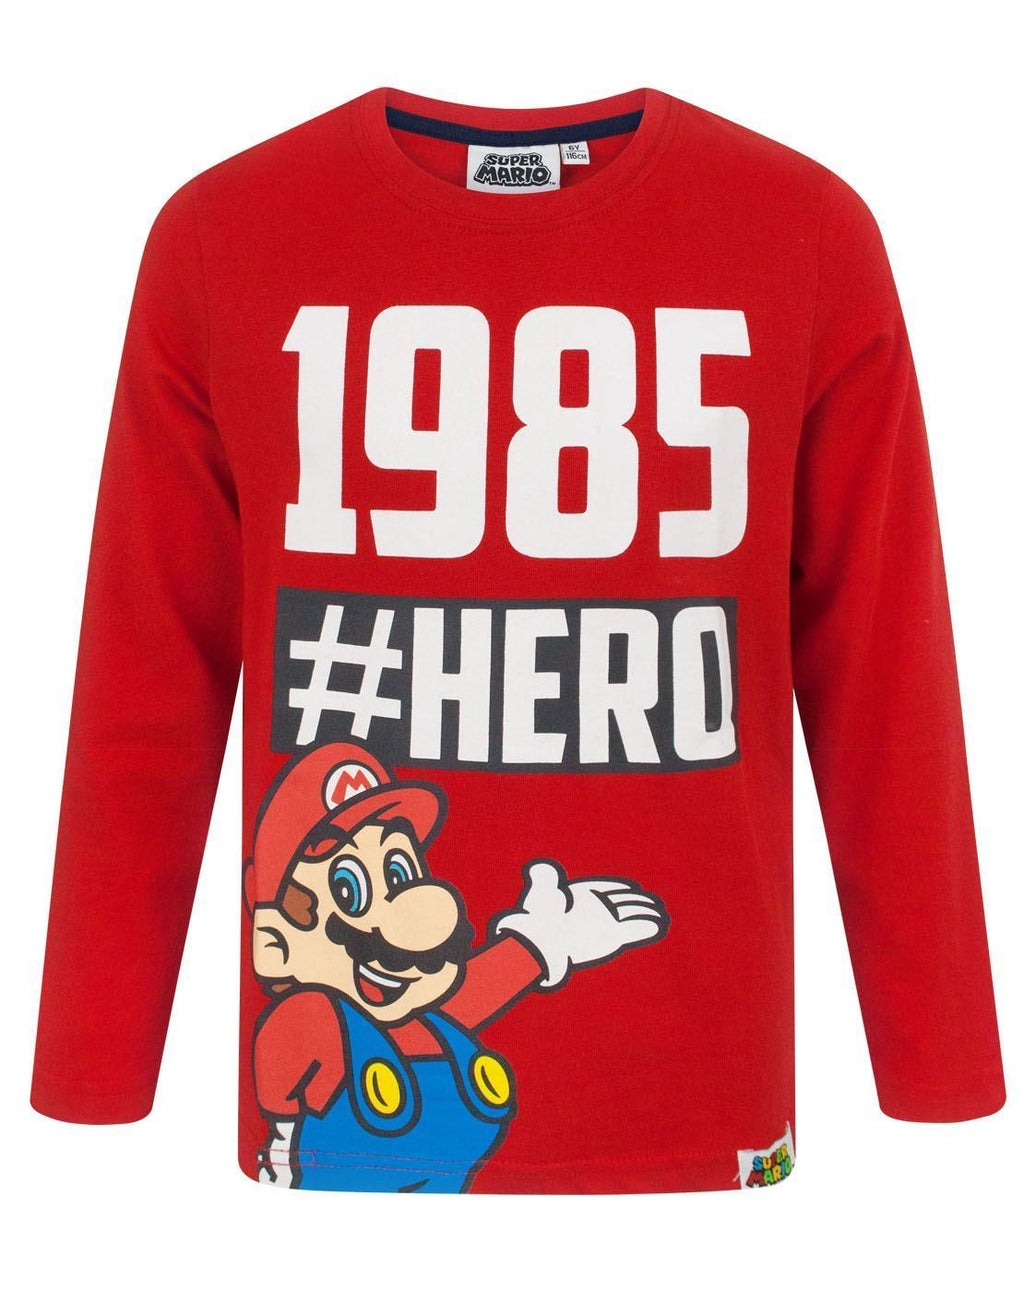 Super Mario Hero Boy's Long Sleeve T-Shirt